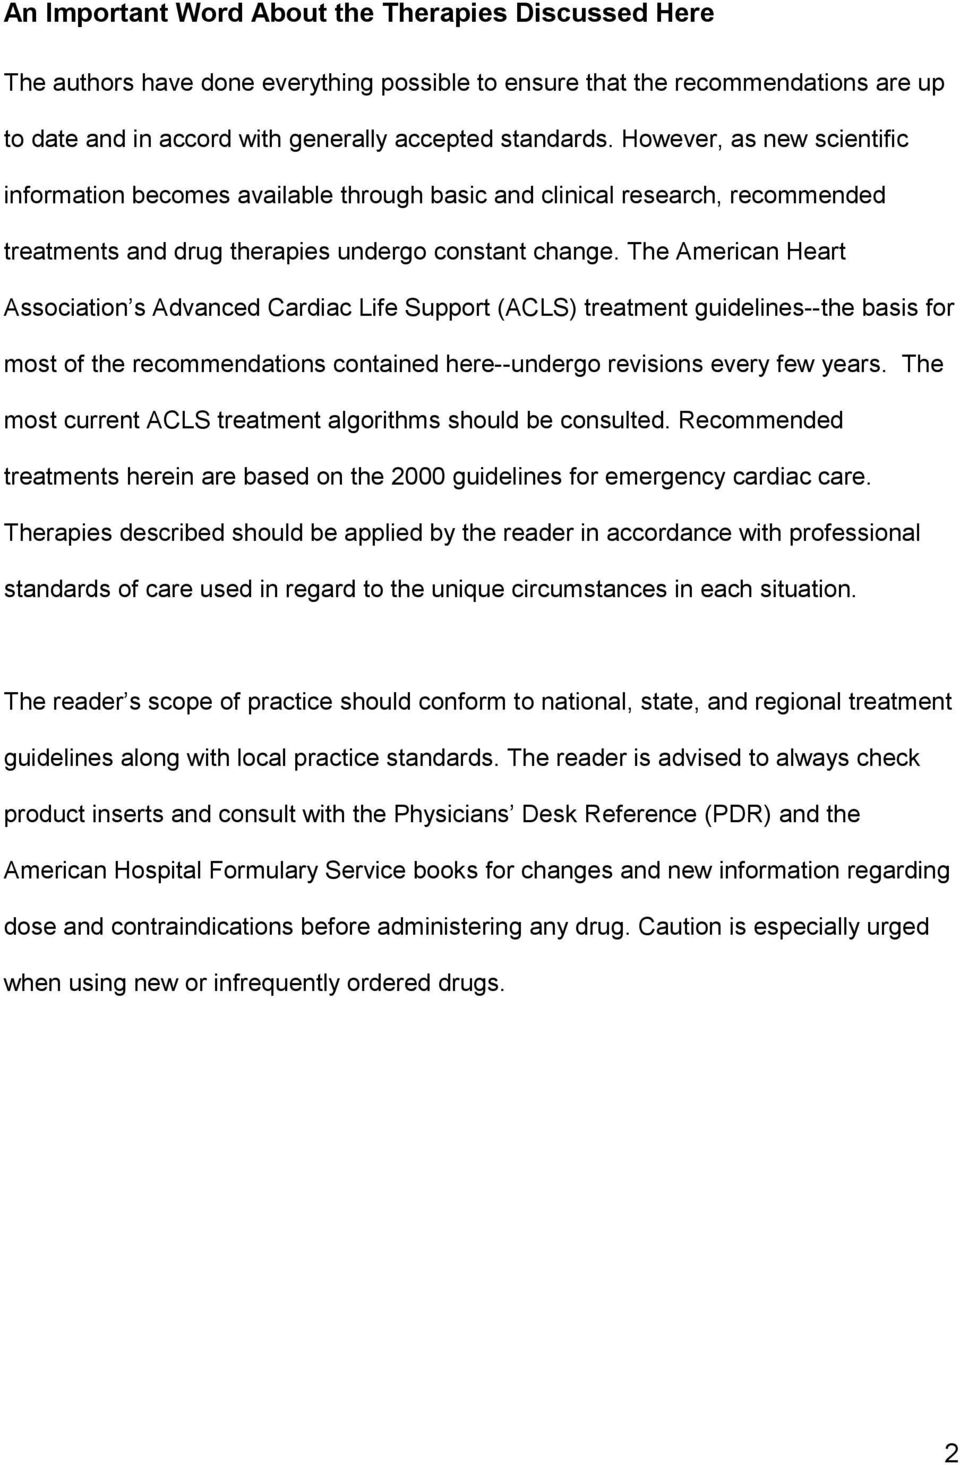 The American Heart Association s Advanced Cardiac Life Support (ACLS) treatment guidelines--the basis for most of the recommendations contained here--undergo revisions every few years.